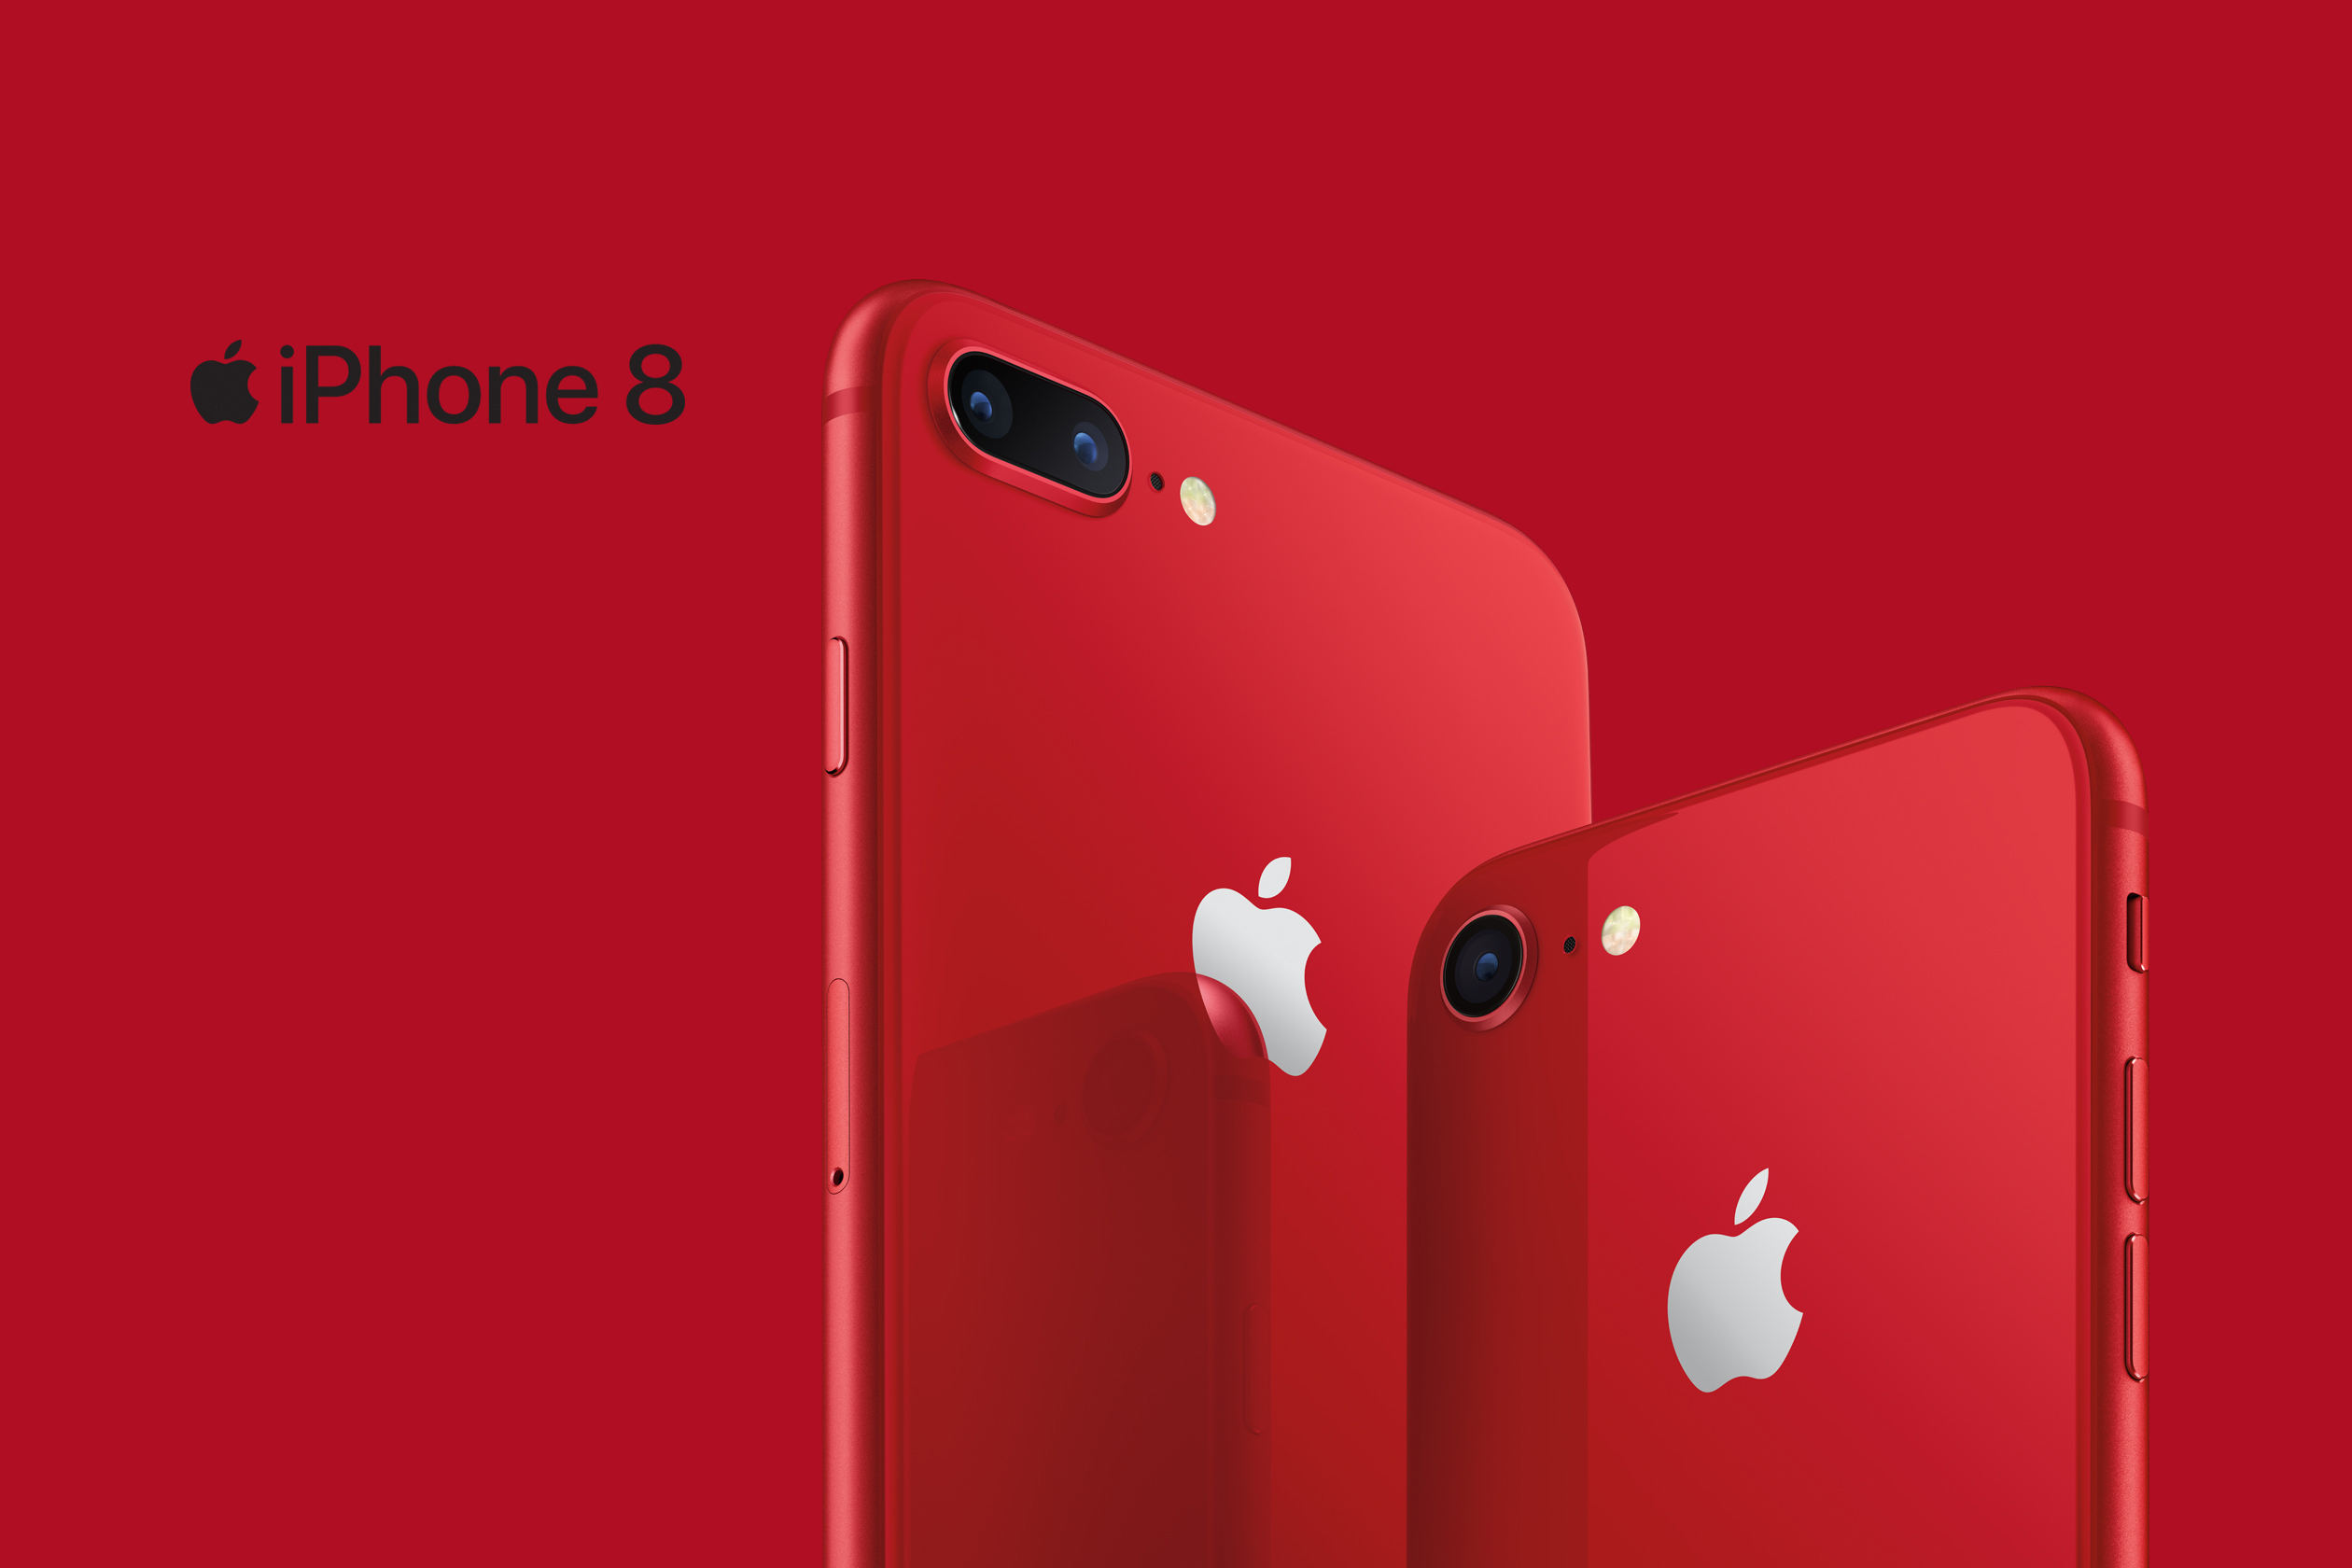 "Νέο iPhone 8 RED"" class="